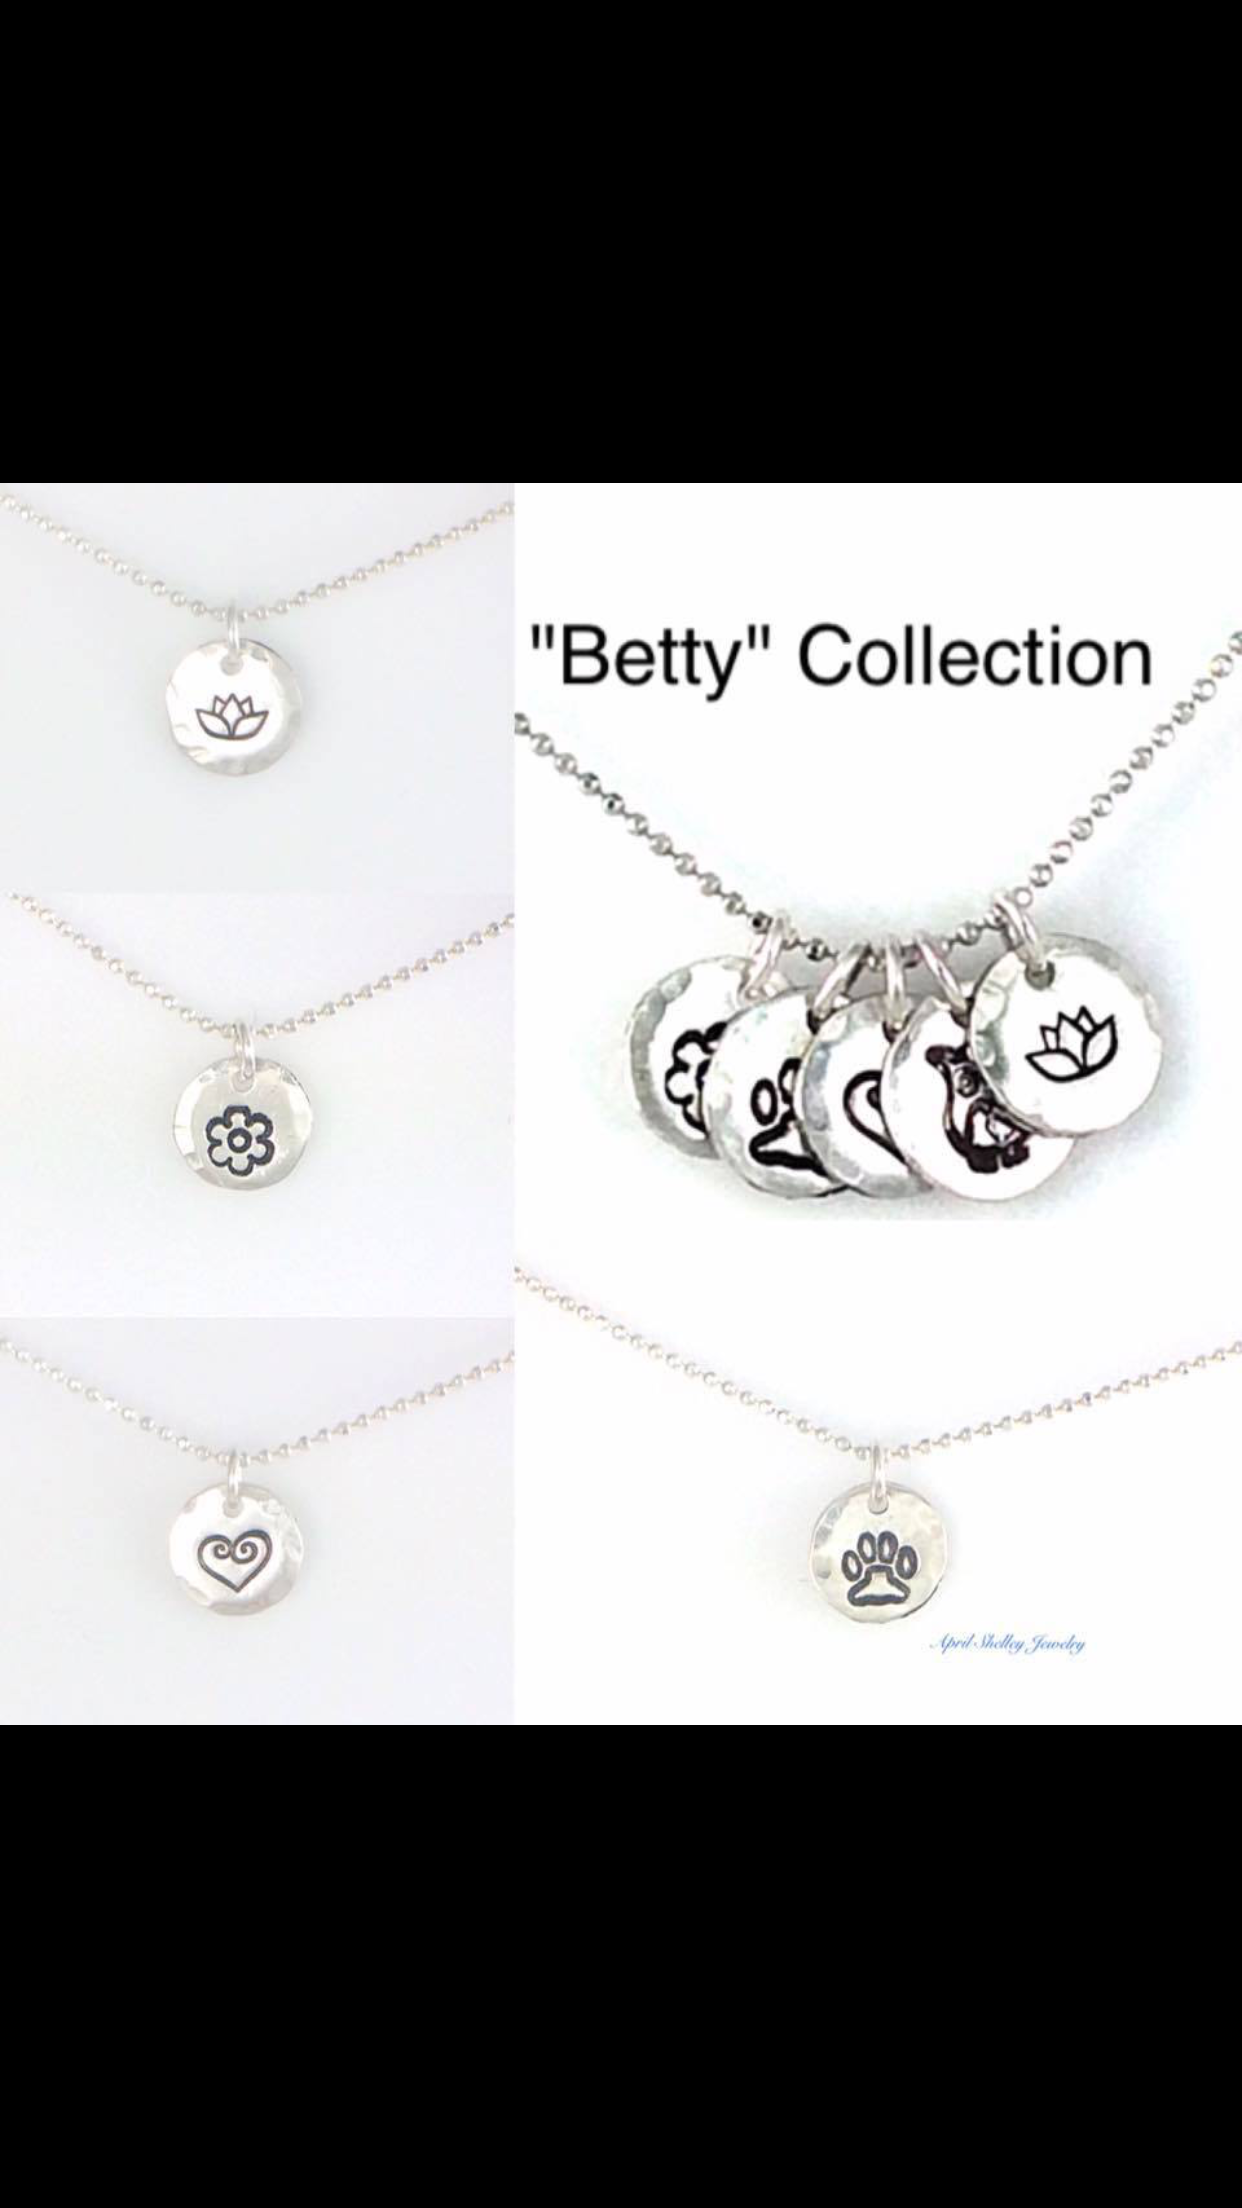 Bitty Betty! The most comfortable necklace you will ever wear! Sterling Silver small disc on a Sterling Silver Diamond cut ball chain. Only $30